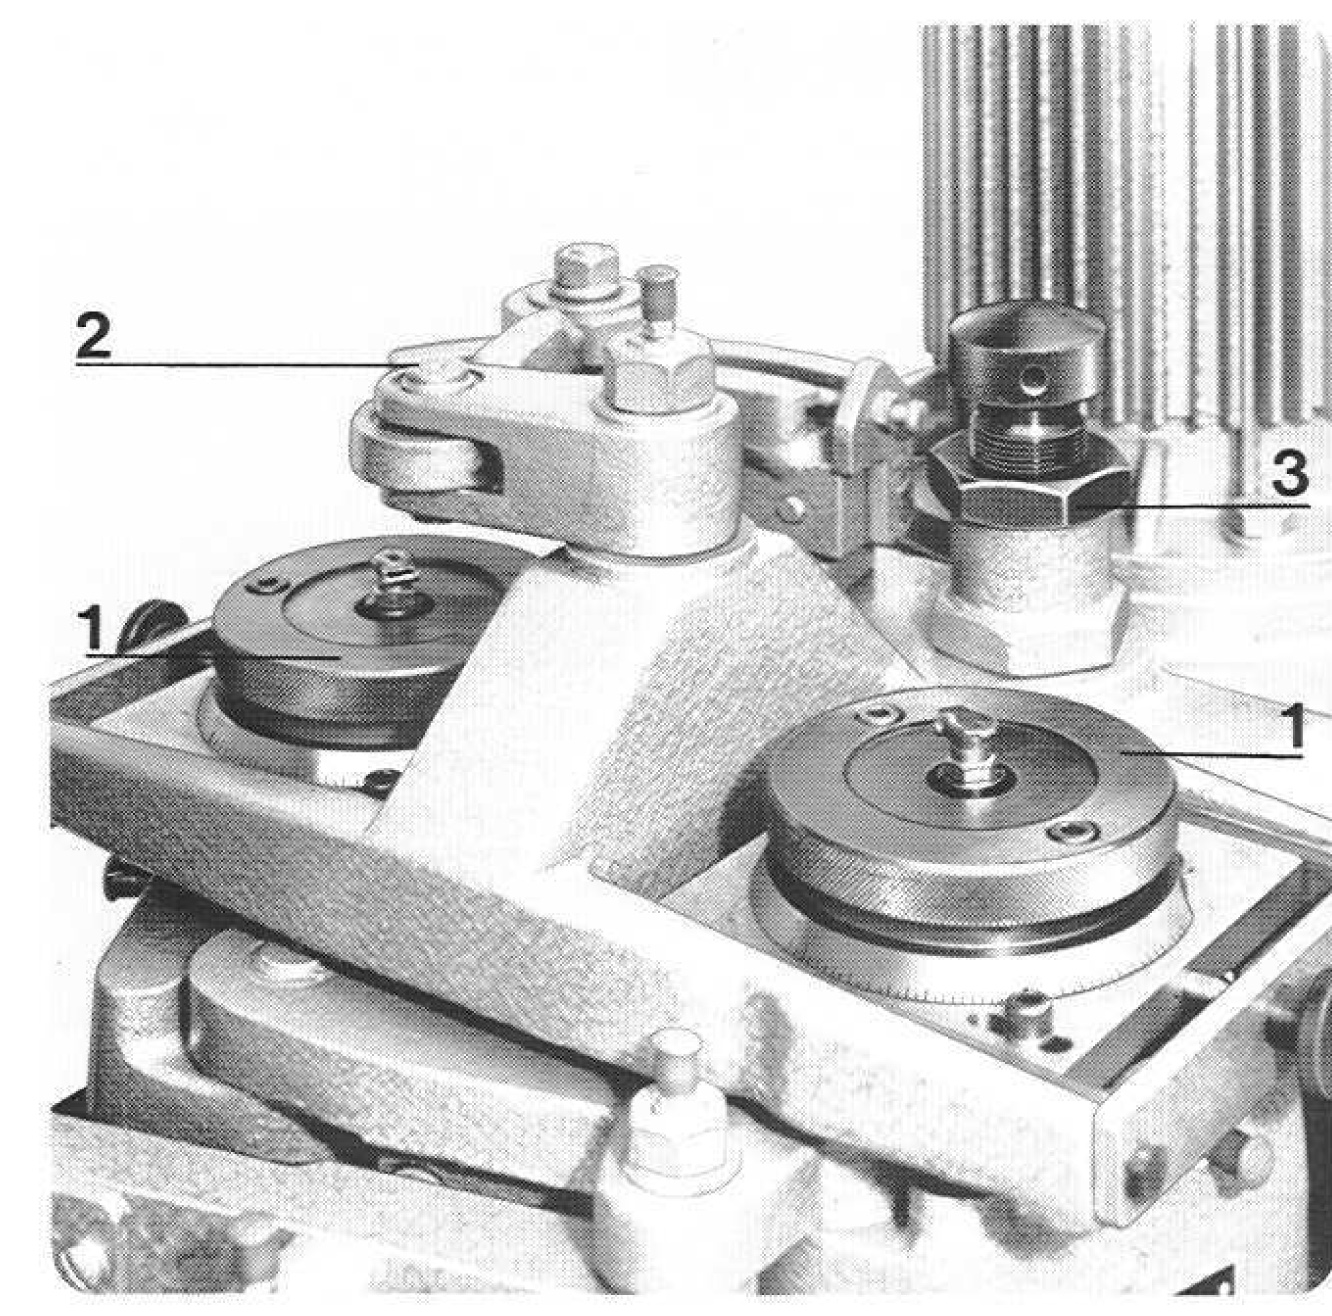 hoffmann-jfa-57-louver-grooving-machine-old-style-details3.jpg